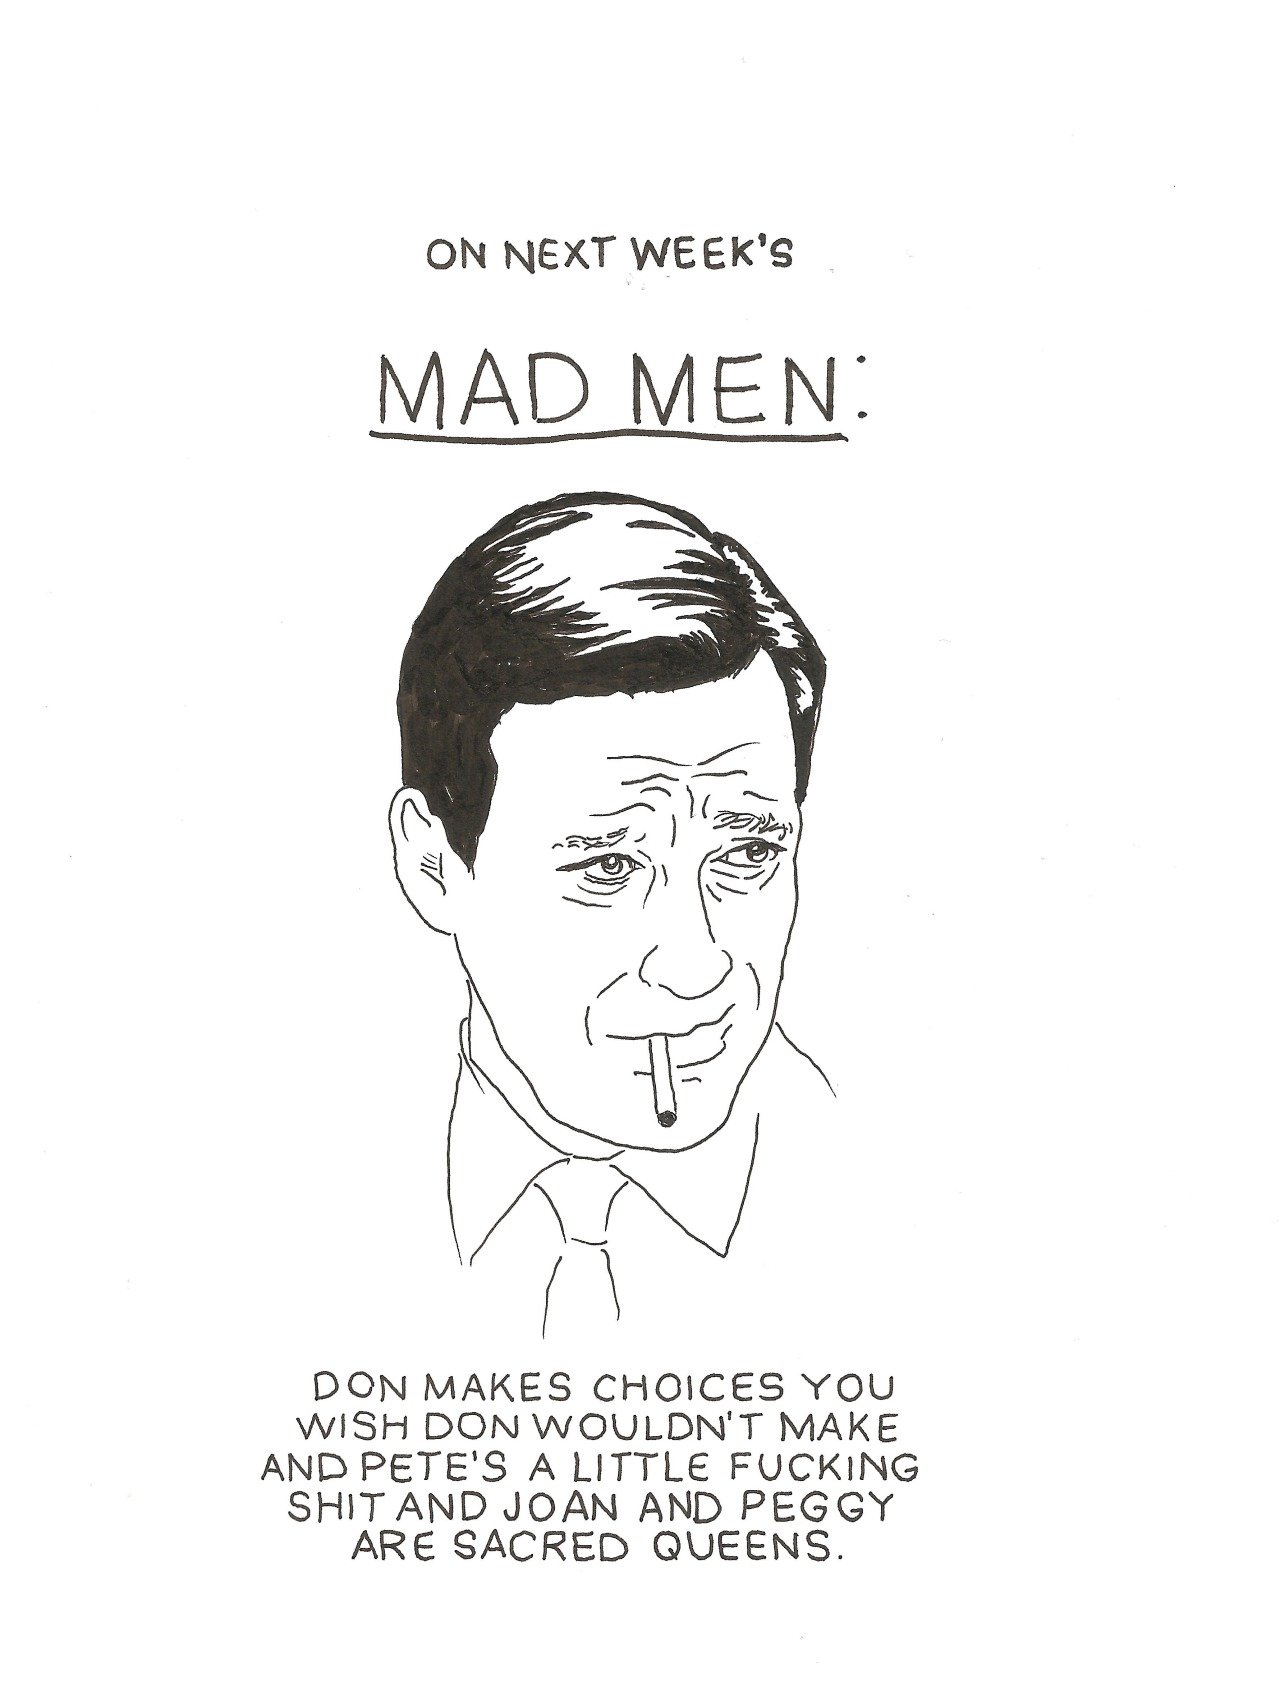 This isn't even funny I just love Mad Men and want to talk about it all the time.